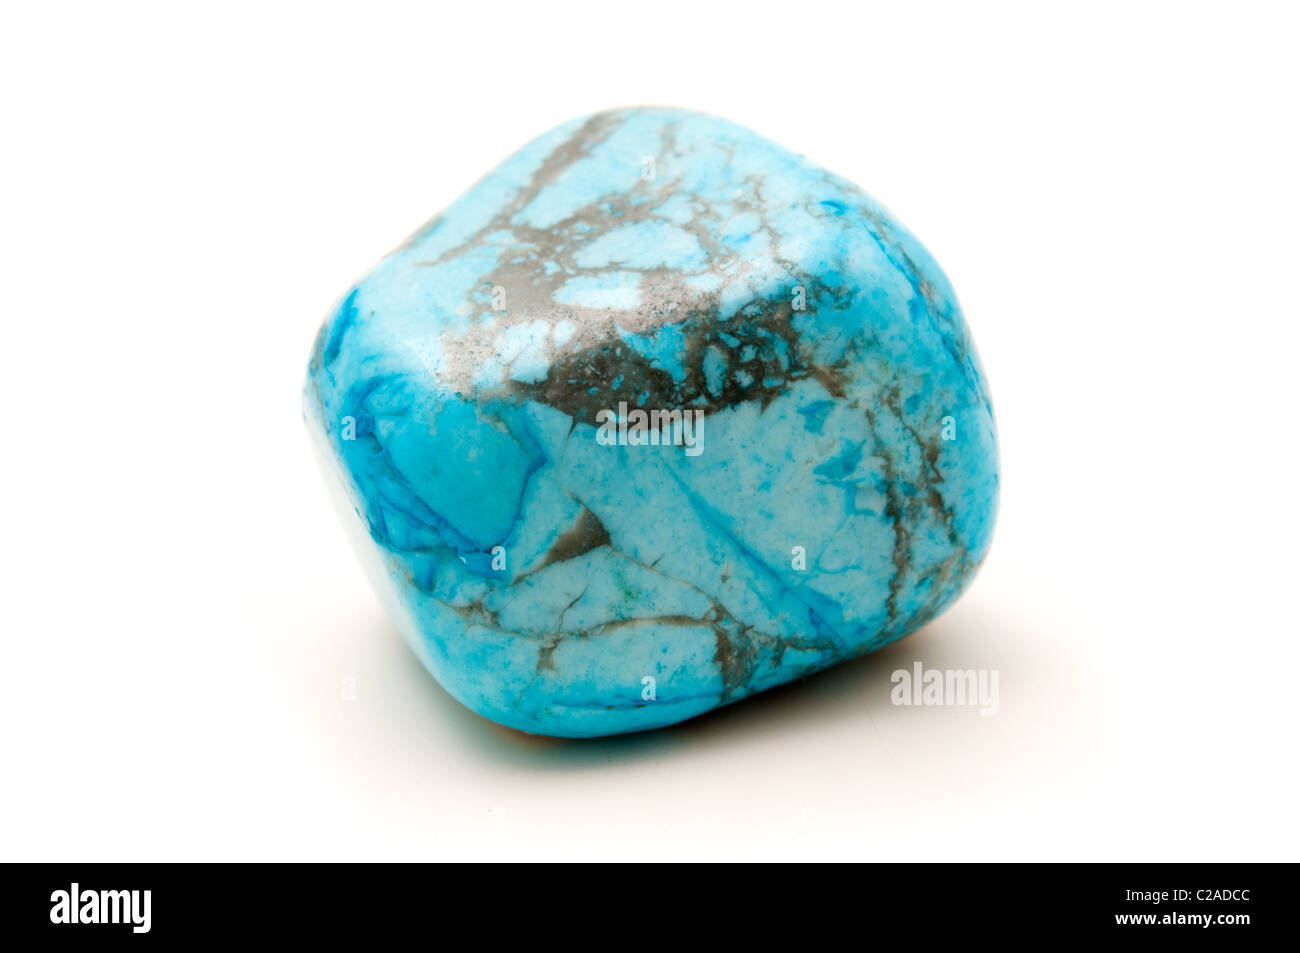 Turquoise on a white background - Stock Image